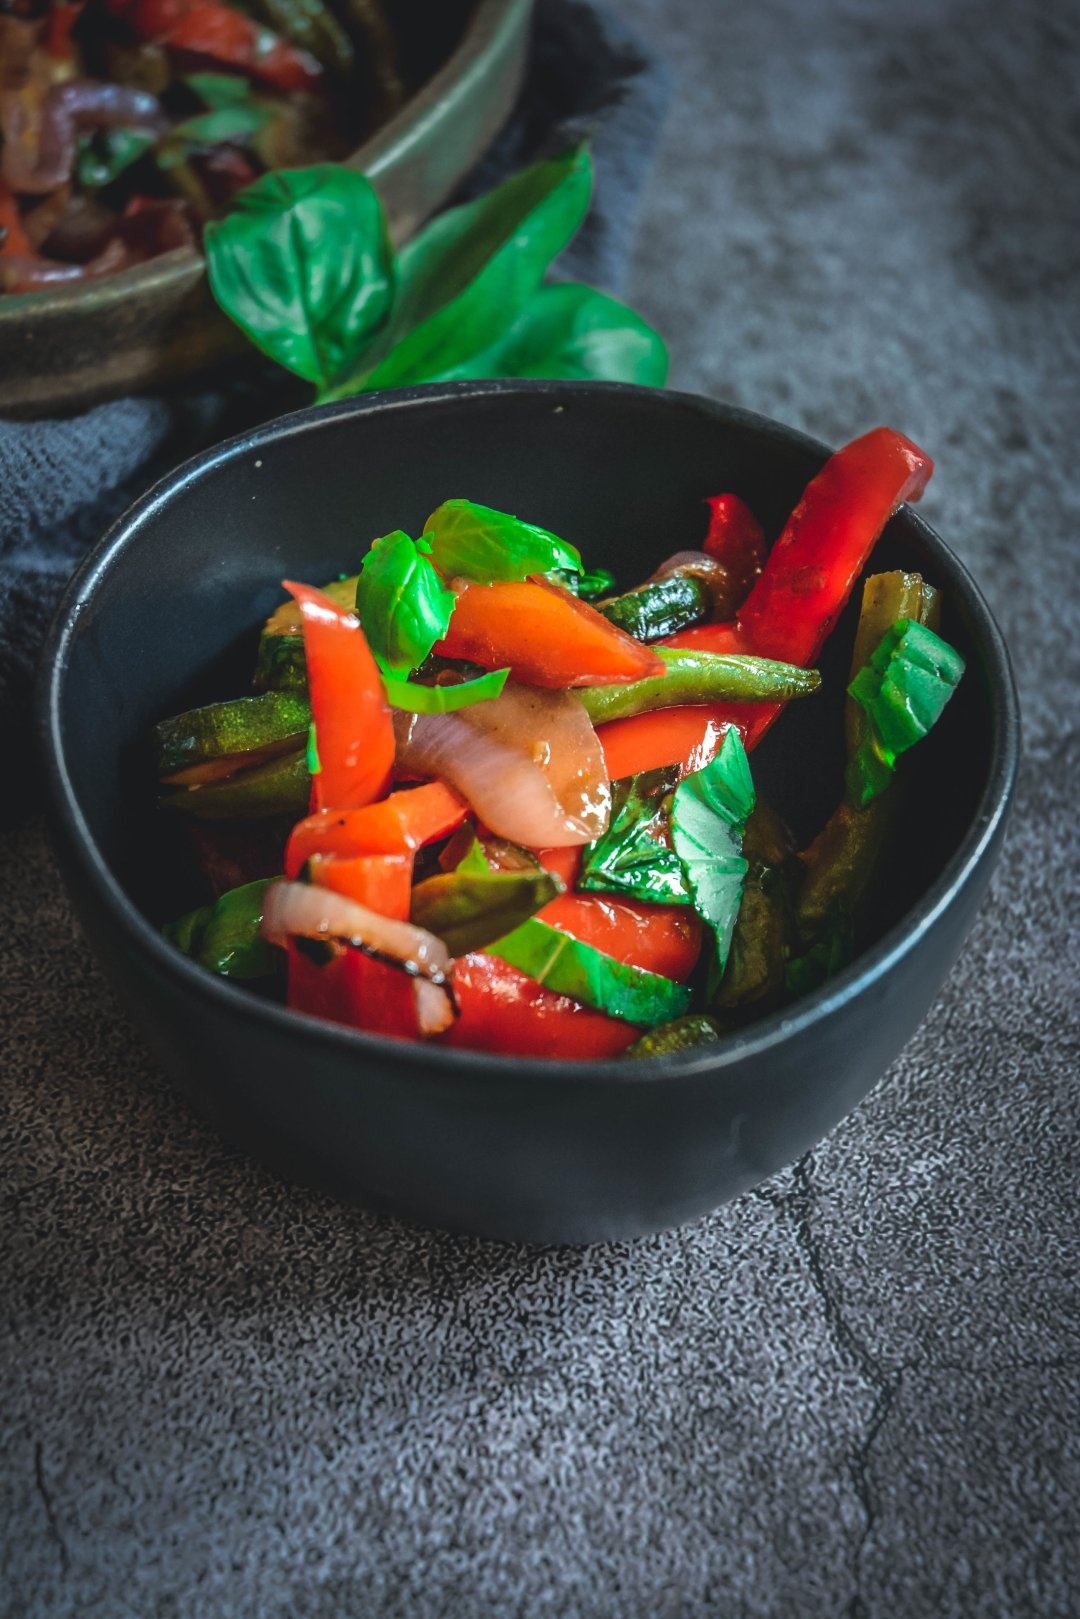 Grilled vegetables in small bowl with fresh basil